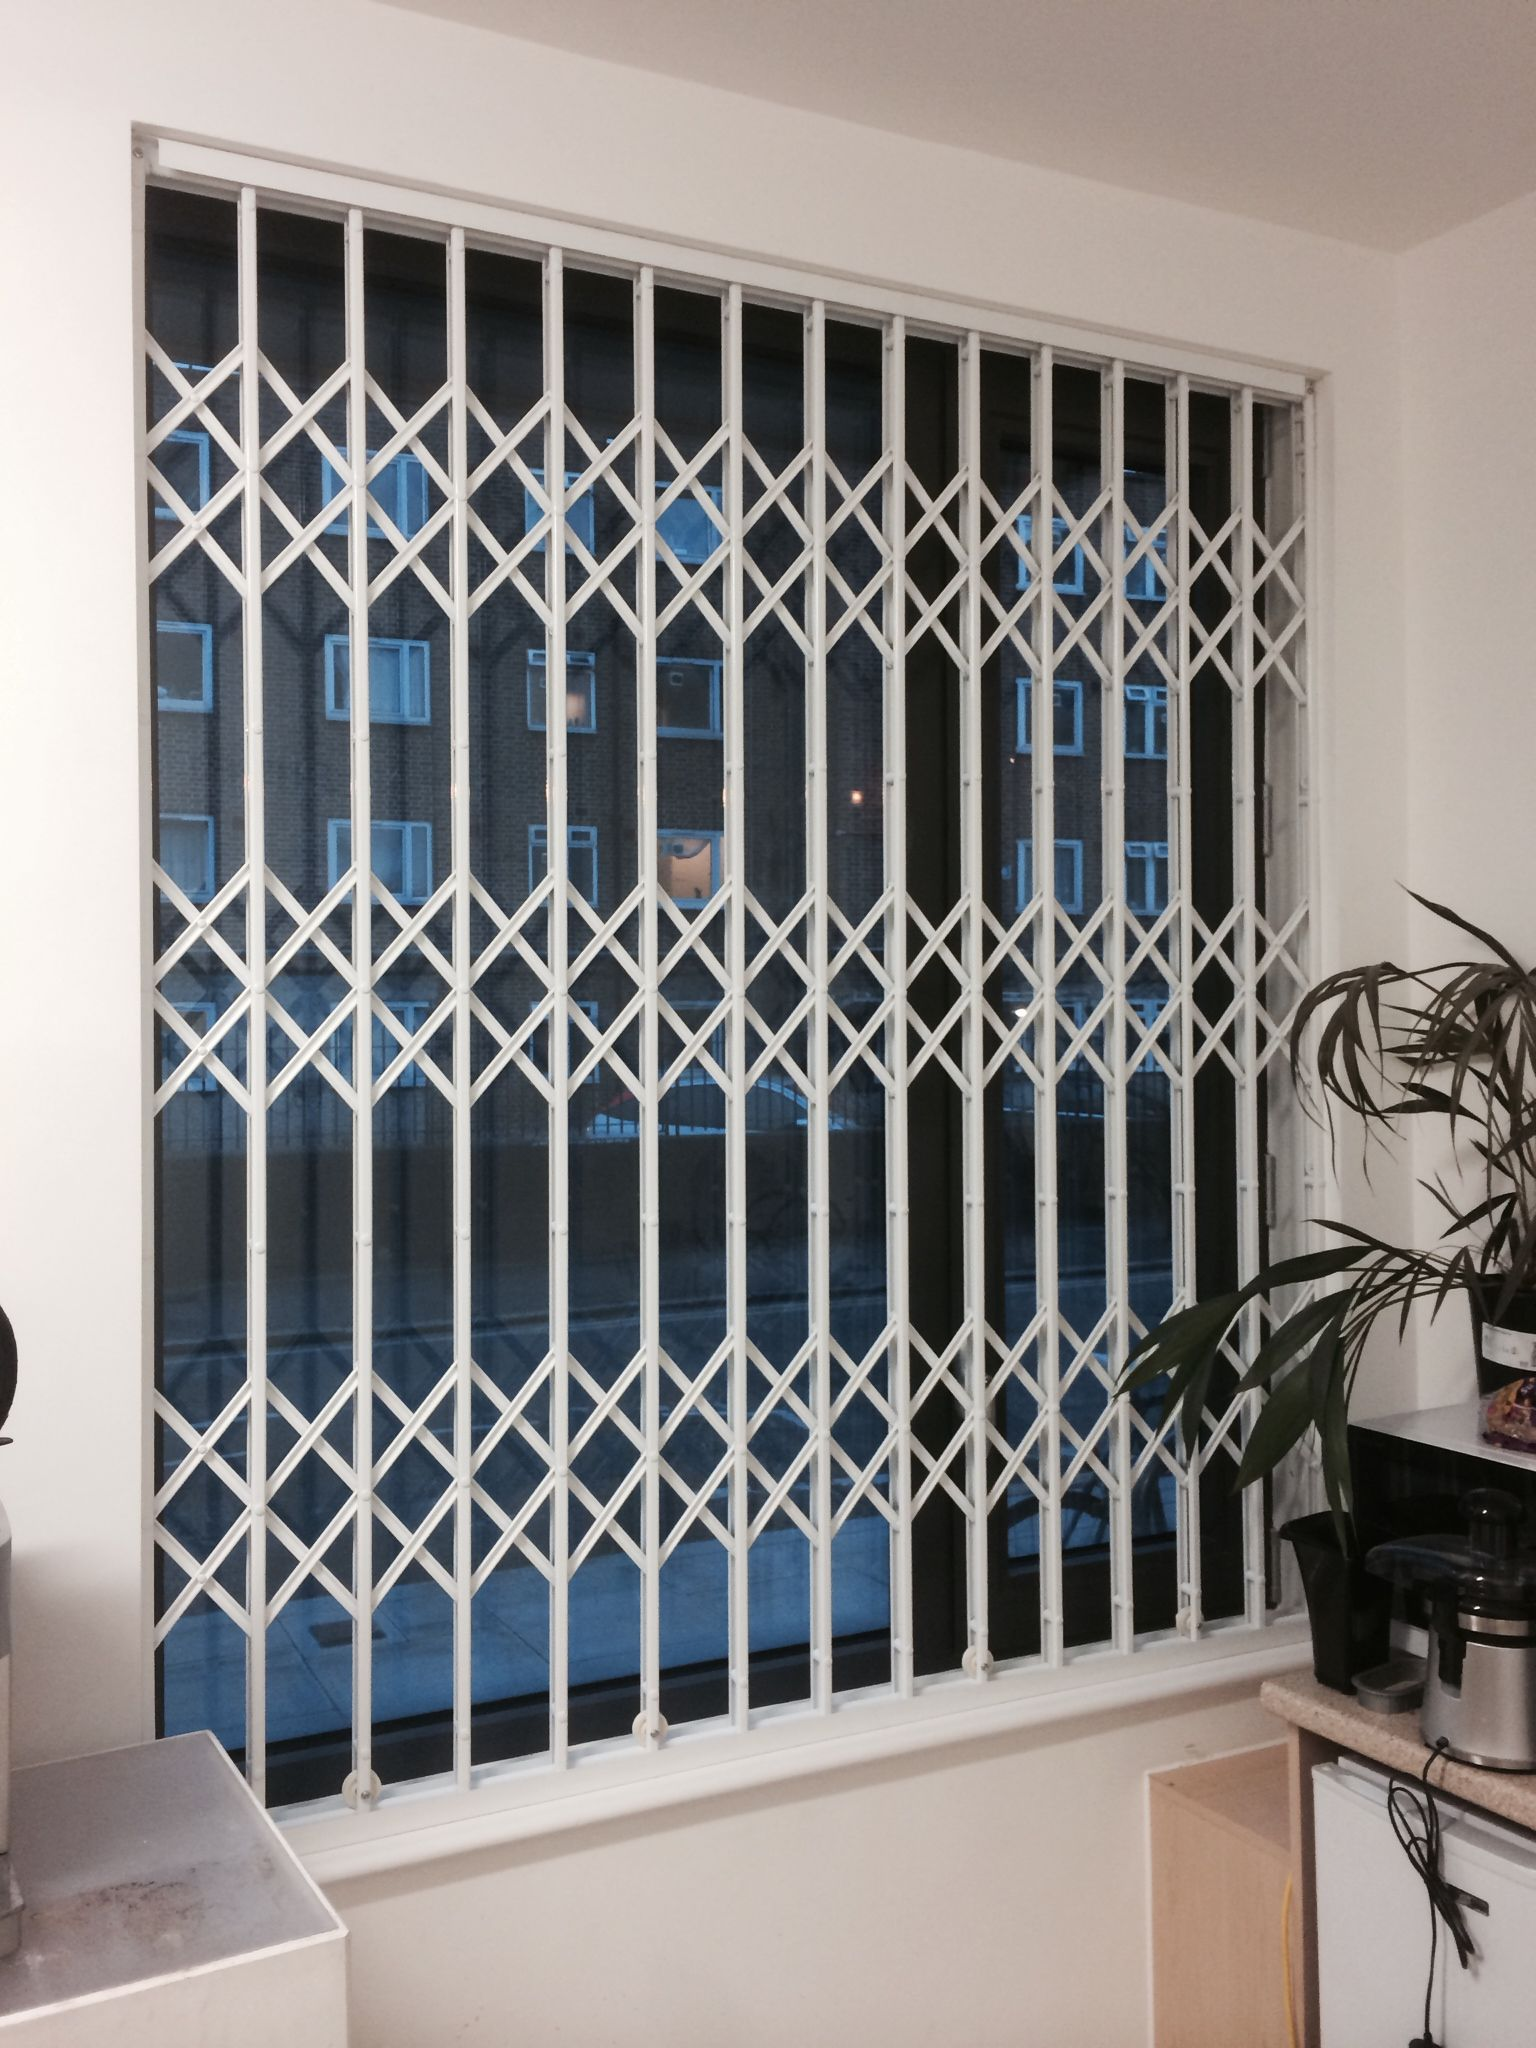 Rsg1000 Retractable Security Grille Securing An Office In